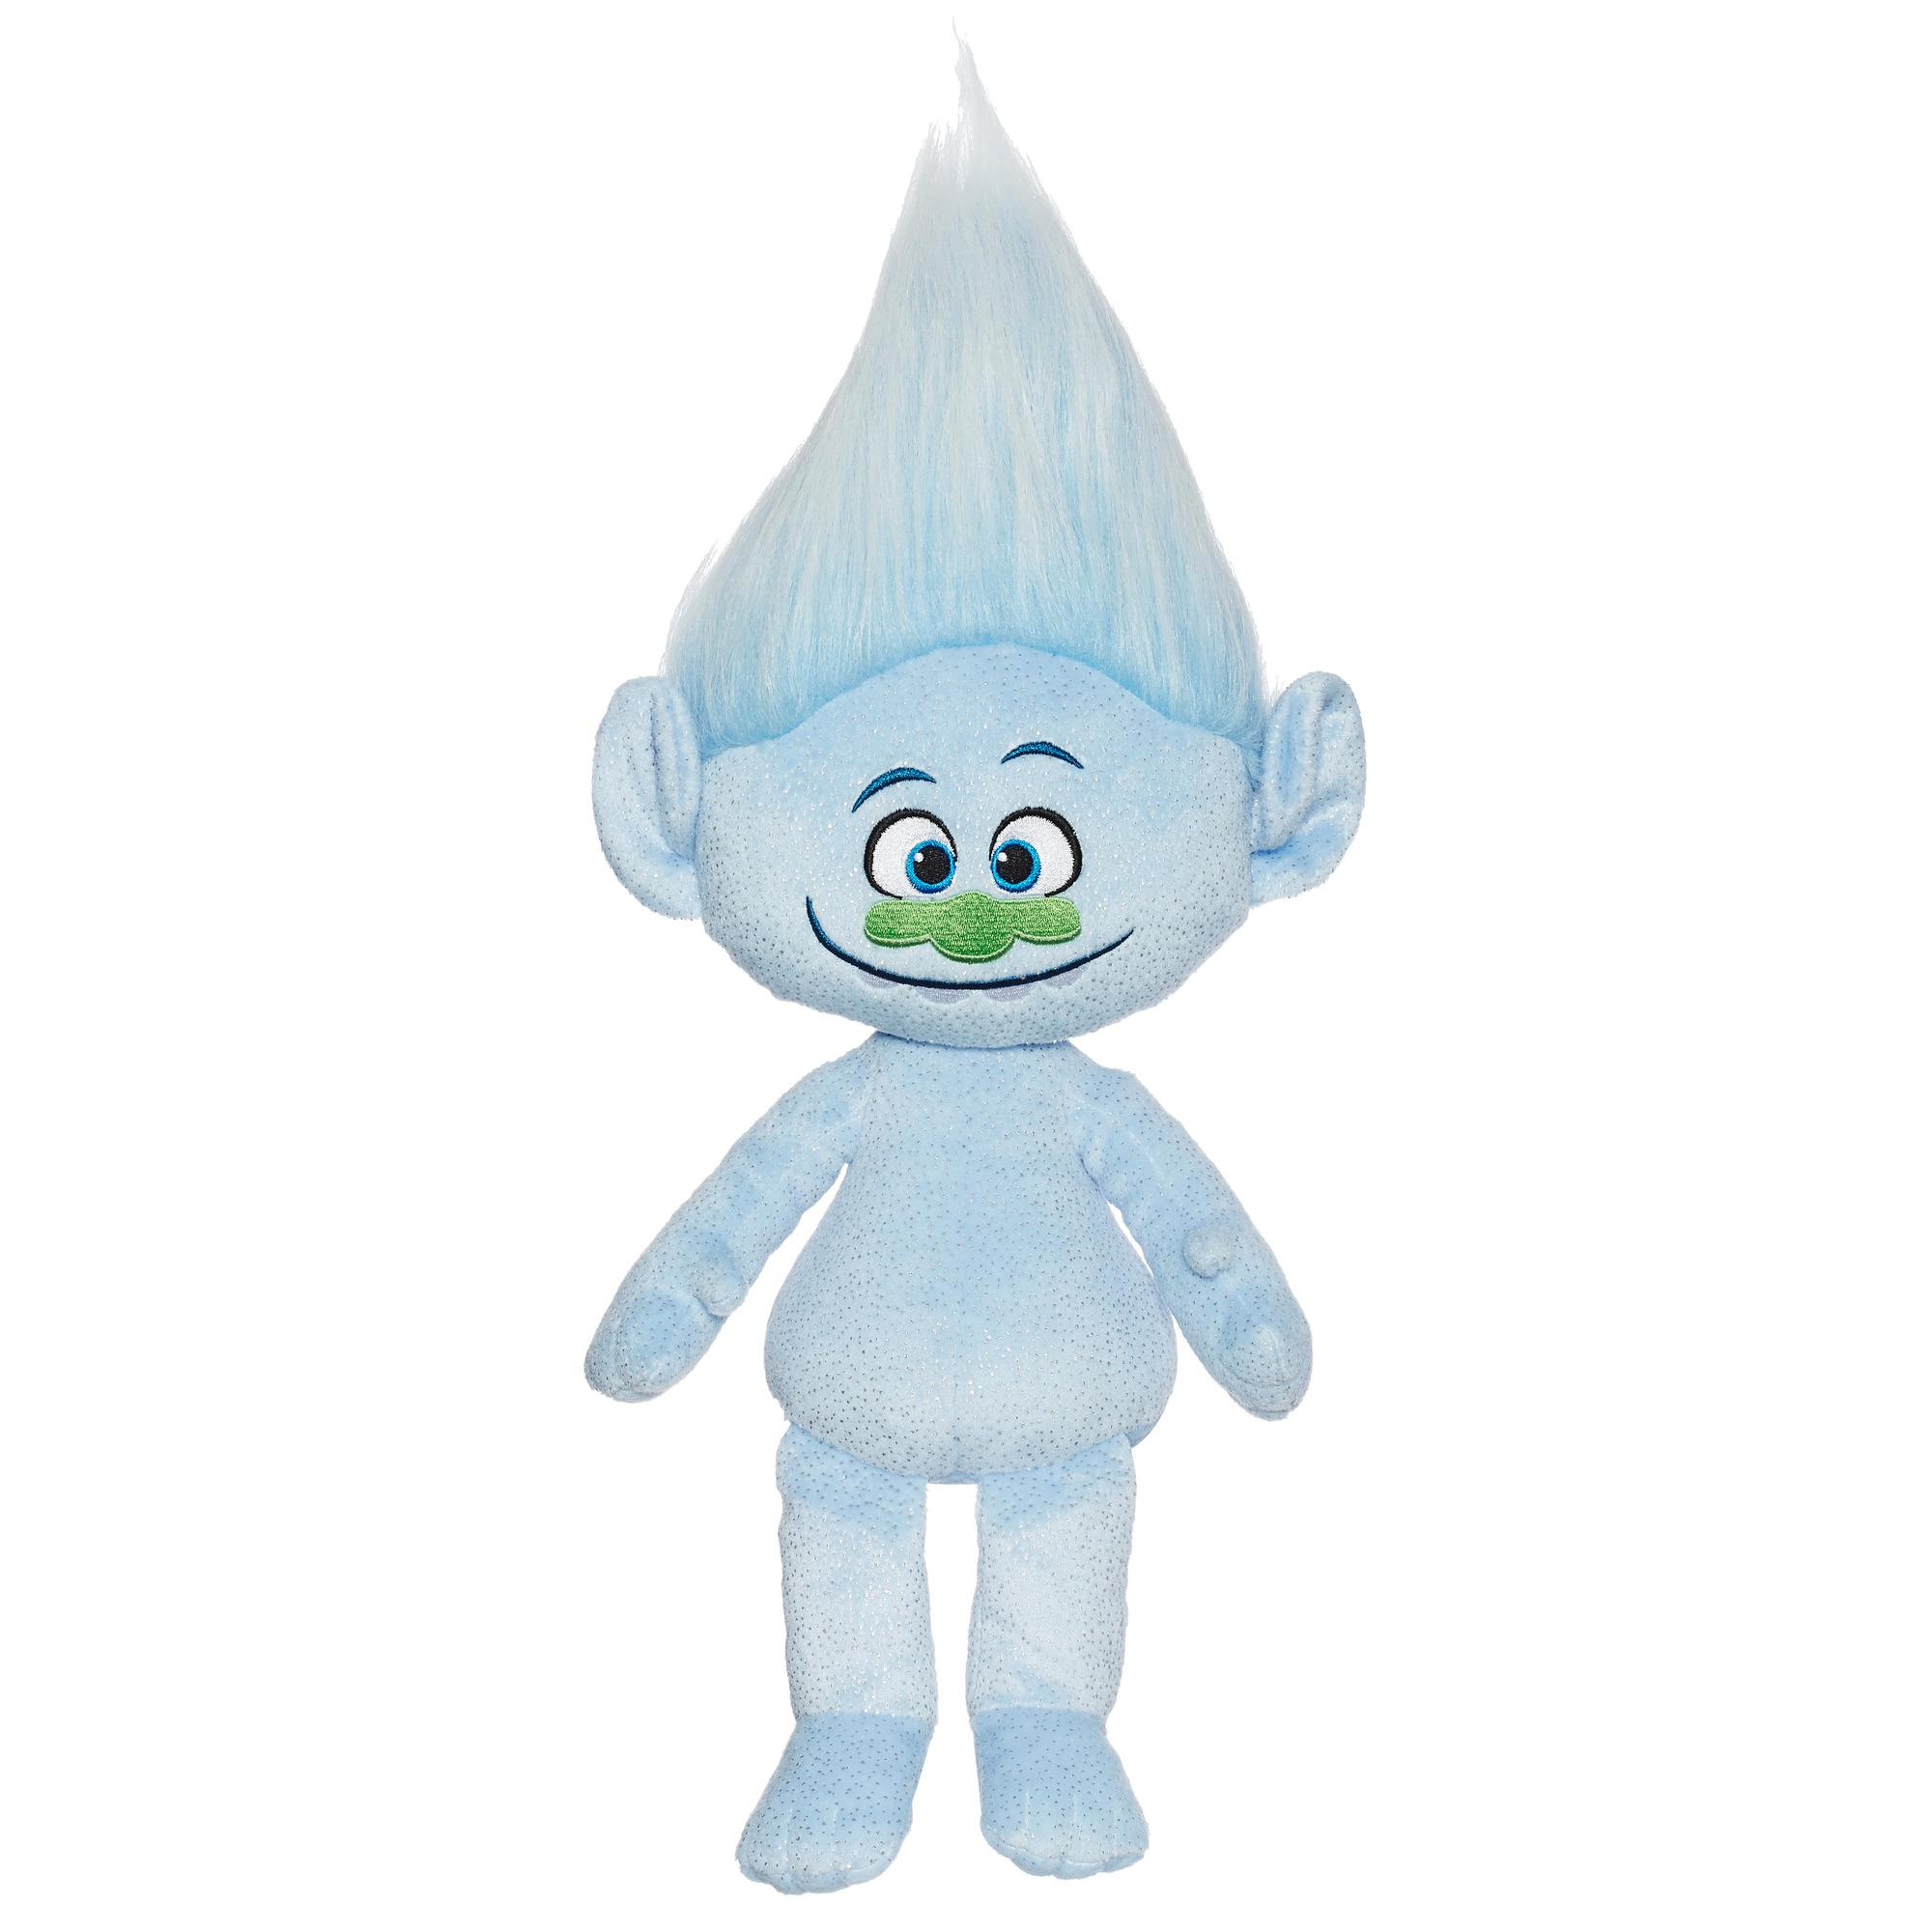 DreamWorks Trolls Guy Diamond Large Hug 'N Plush Doll